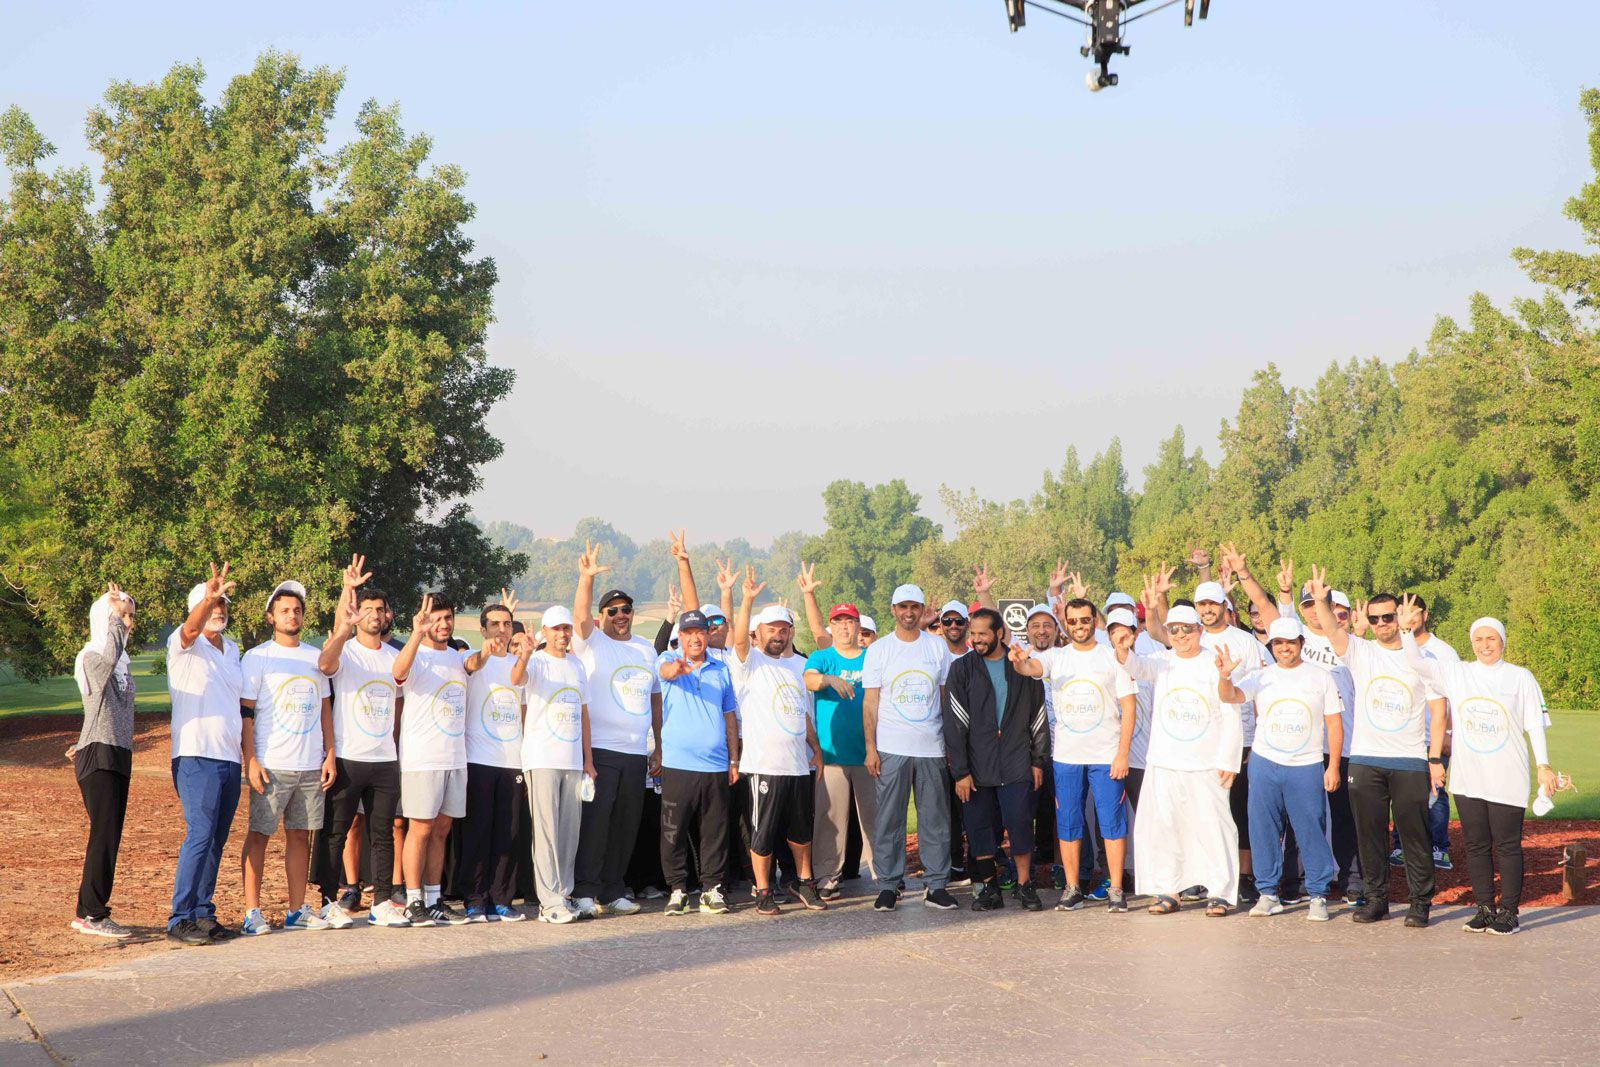 Dubai Land Department chooses Jumeirah Golf Estates to kick off its first ever Real Estate Fitness Challenge